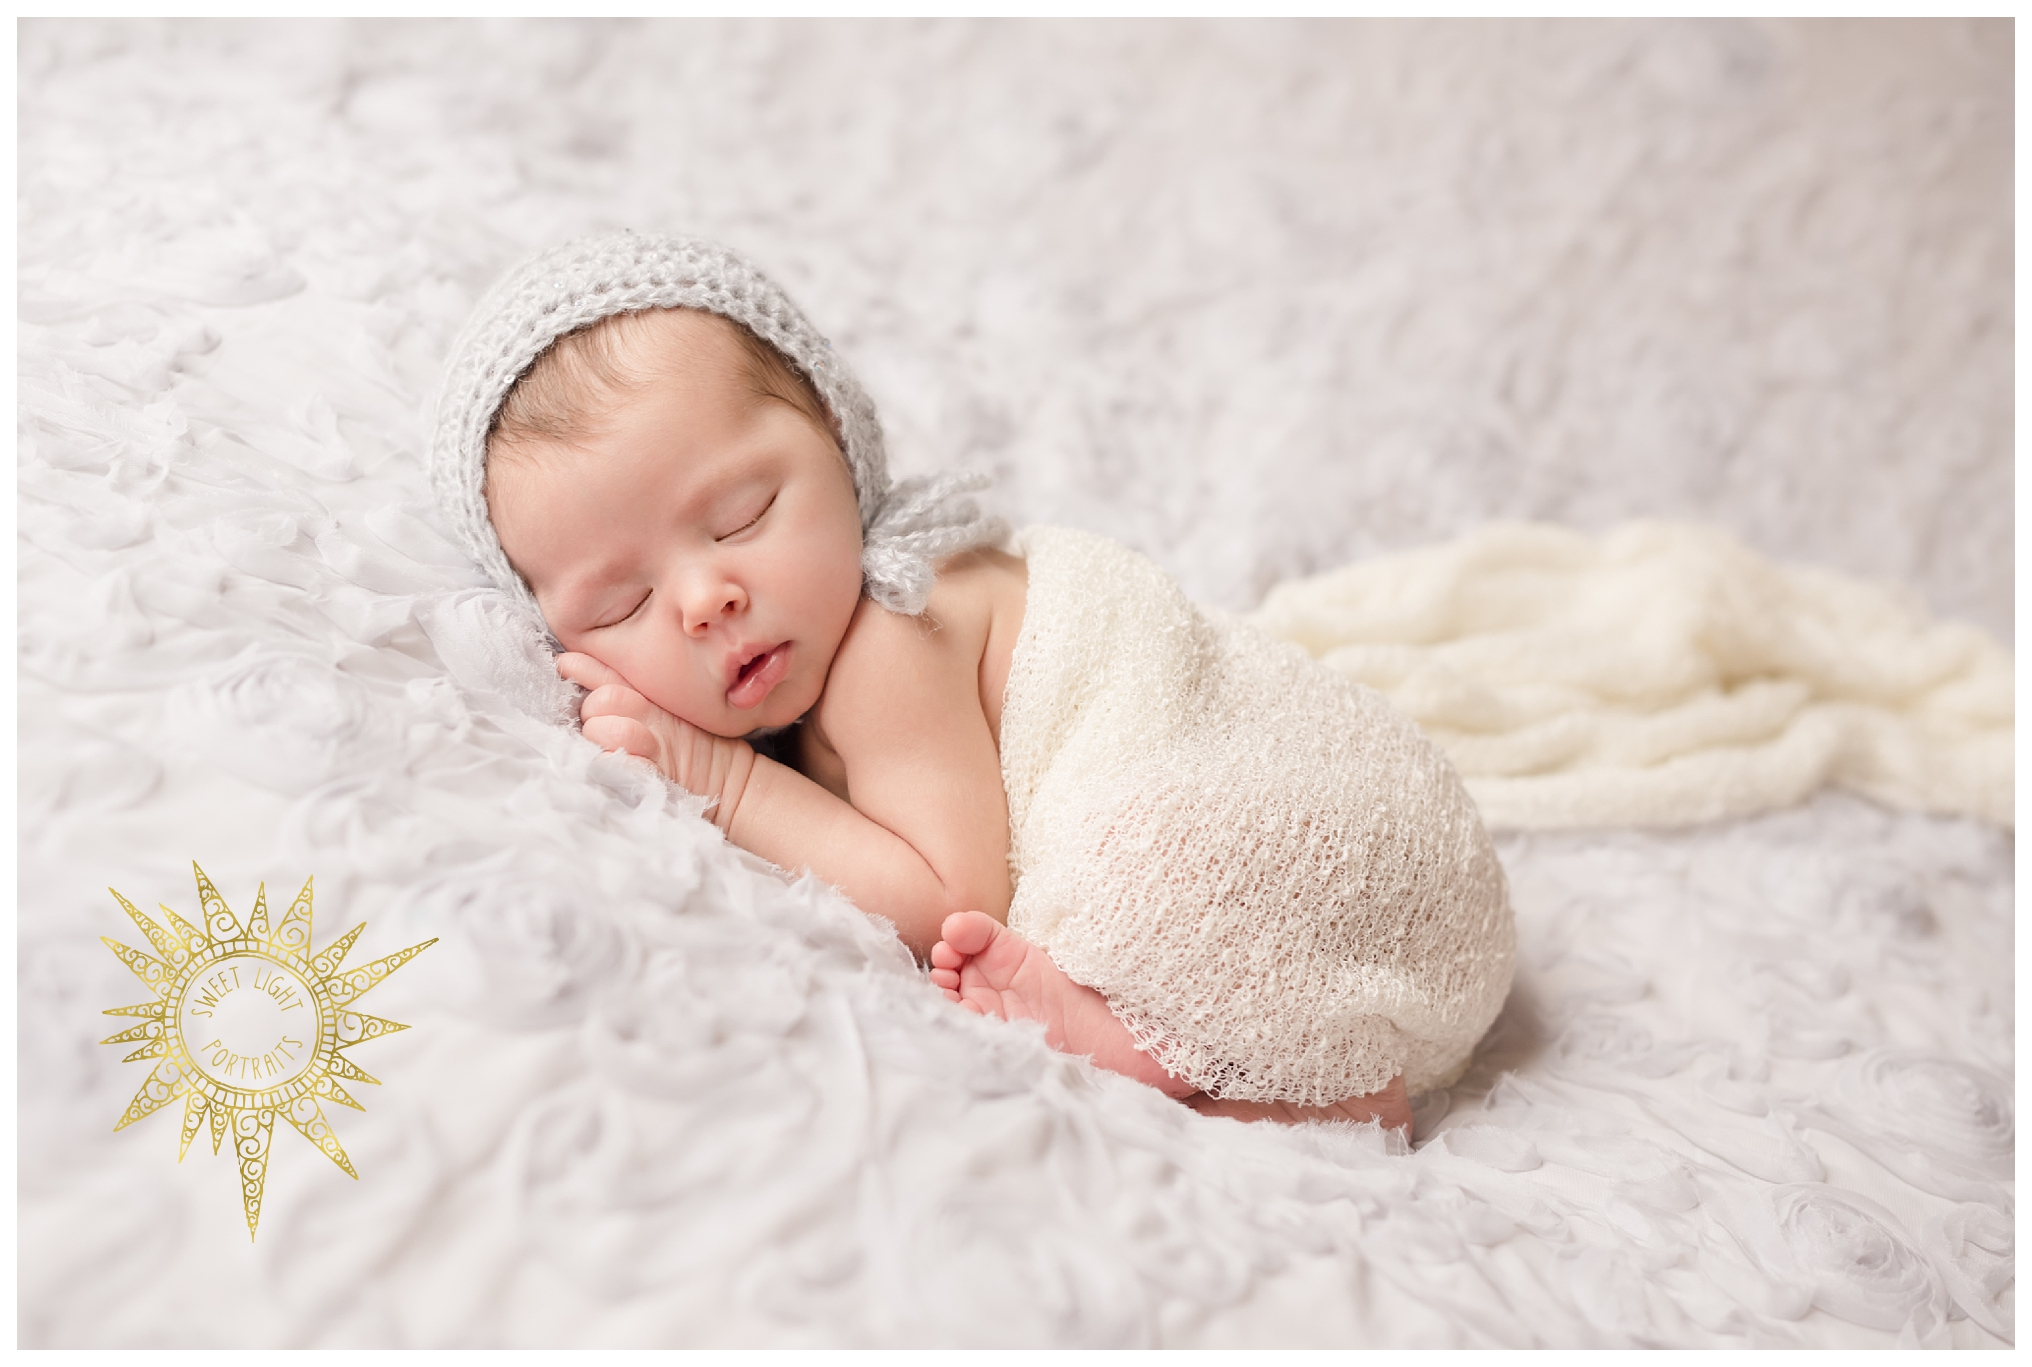 Newborn-Photos-Sweet-Light-Portraits35.jpg